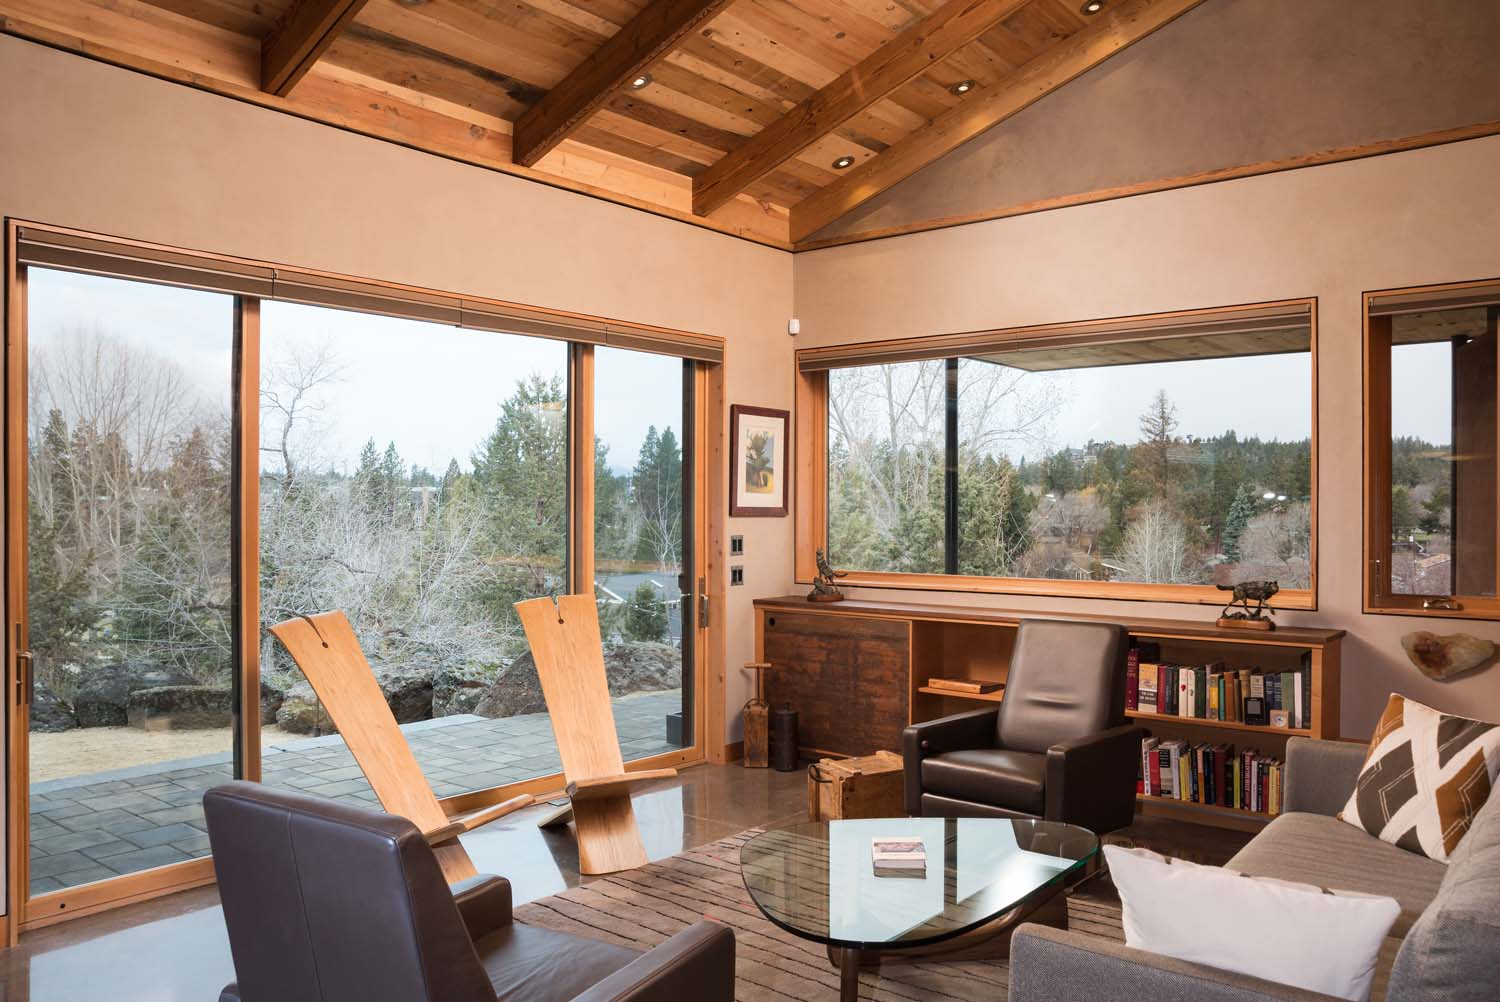 Tour the world's greenest home in Bend, Oregon